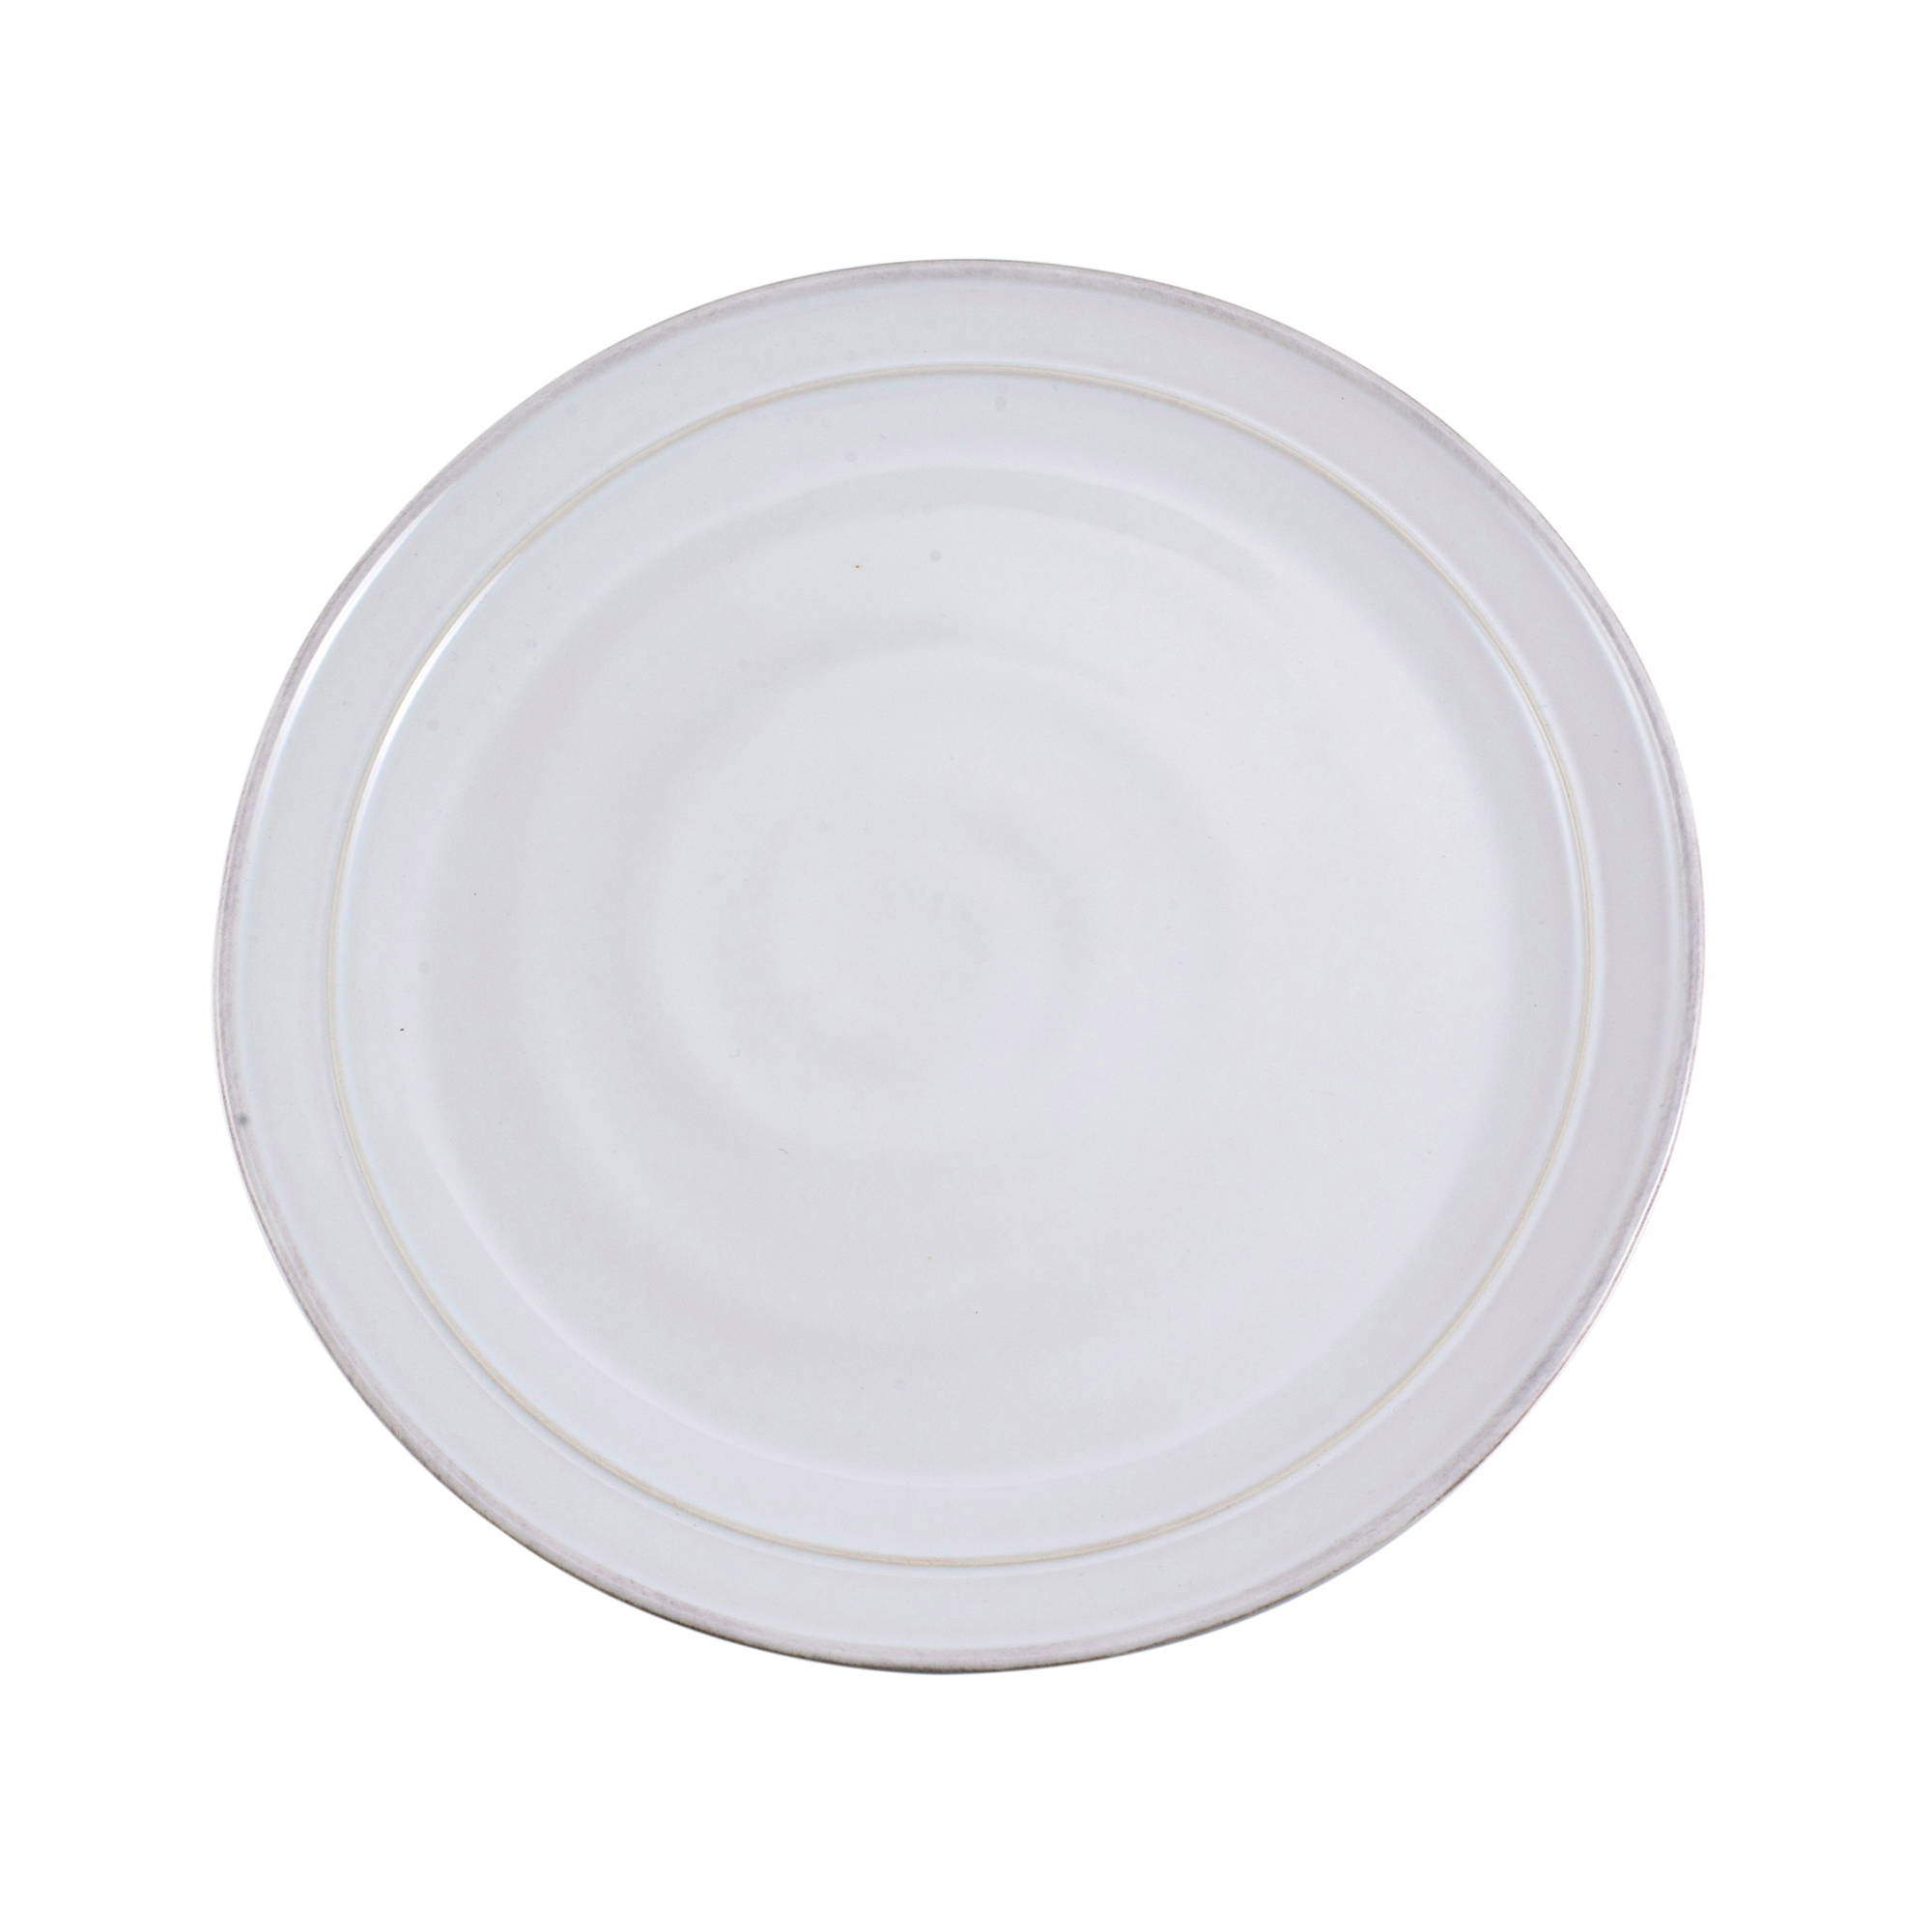 Simon Pearce Hartland Ridge Salad Plate